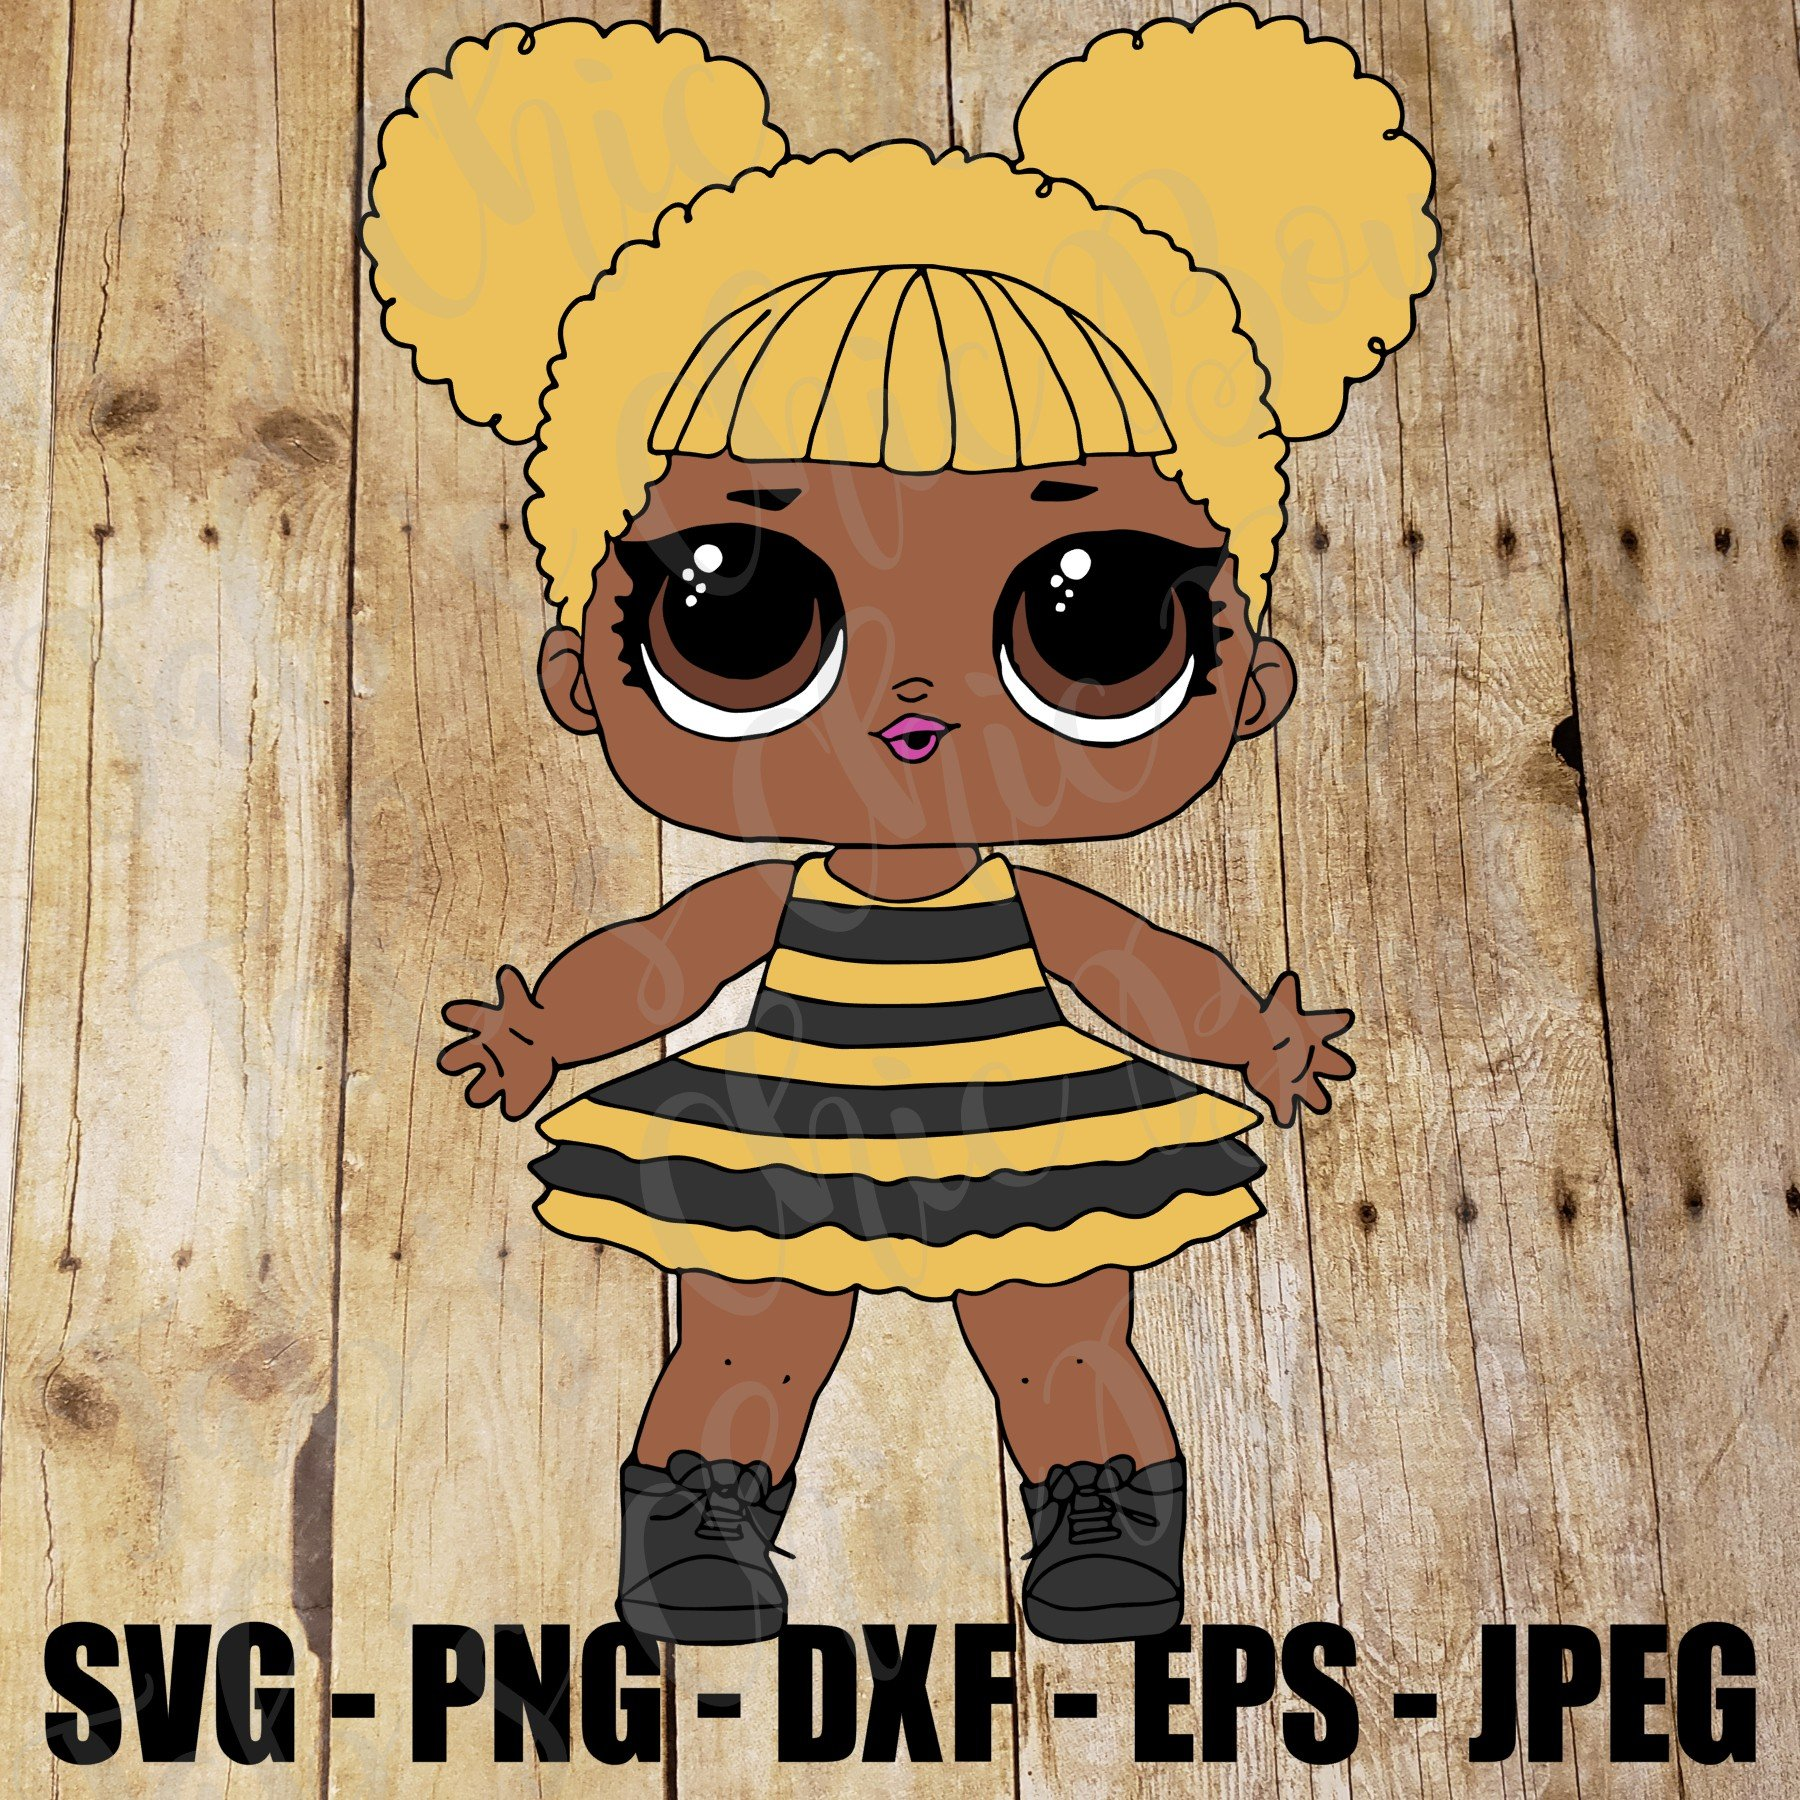 BumbleBee Queen Bee Surprise L.O.L. Doll SVG JPEG High Def DXF PNG EPS  Sublimation Design File.